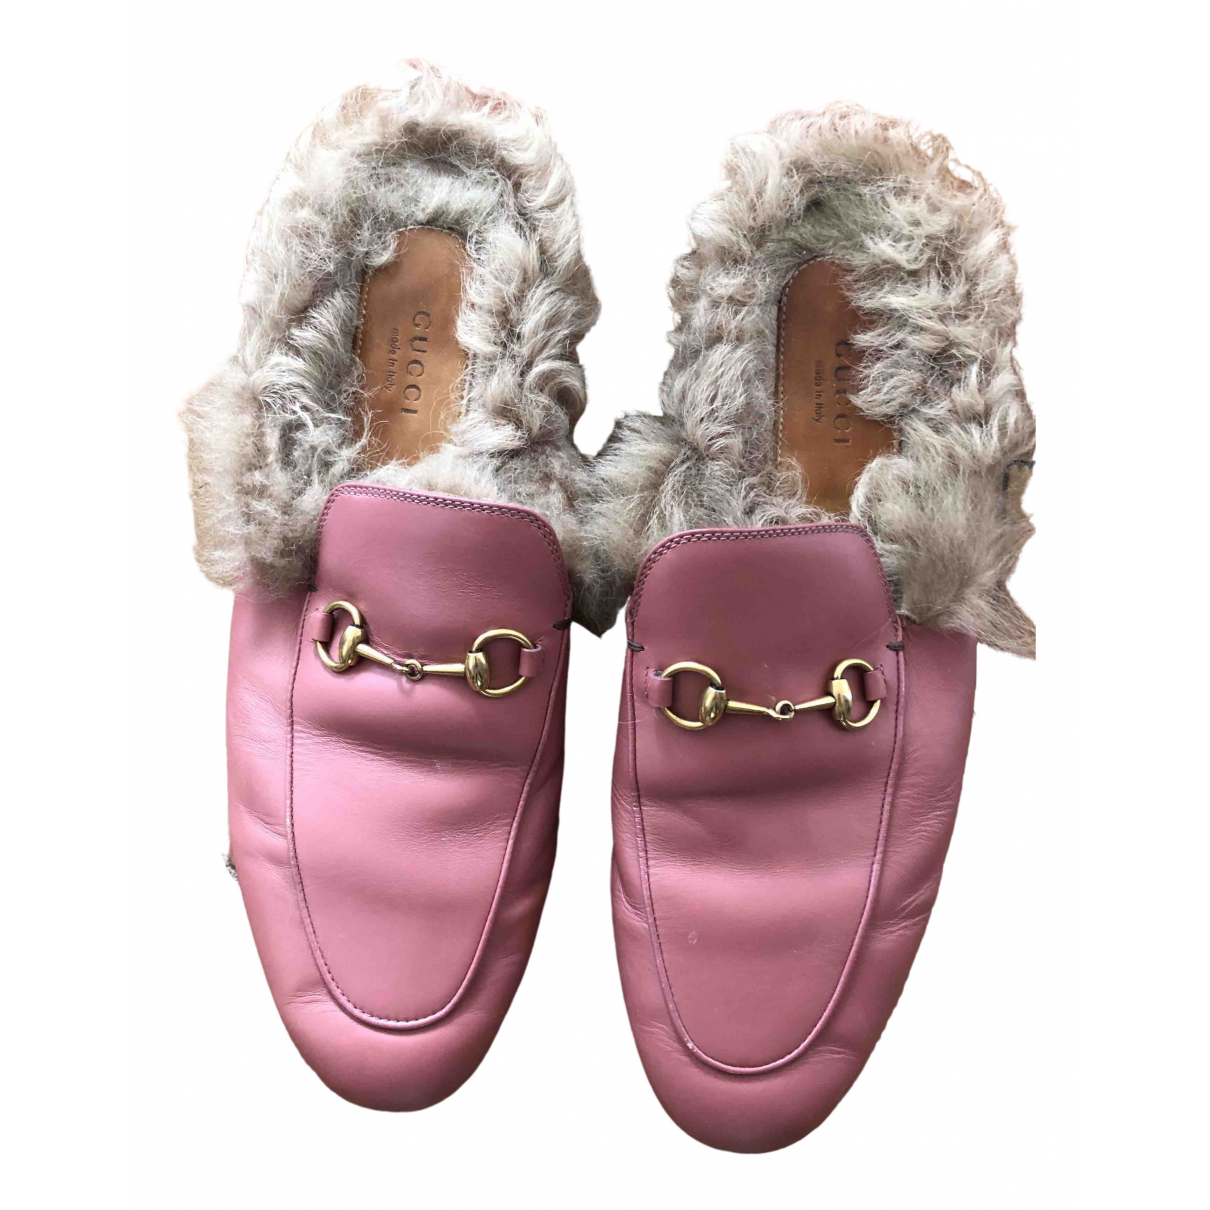 Gucci Princetown Pink Leather Flats for Women 41 EU